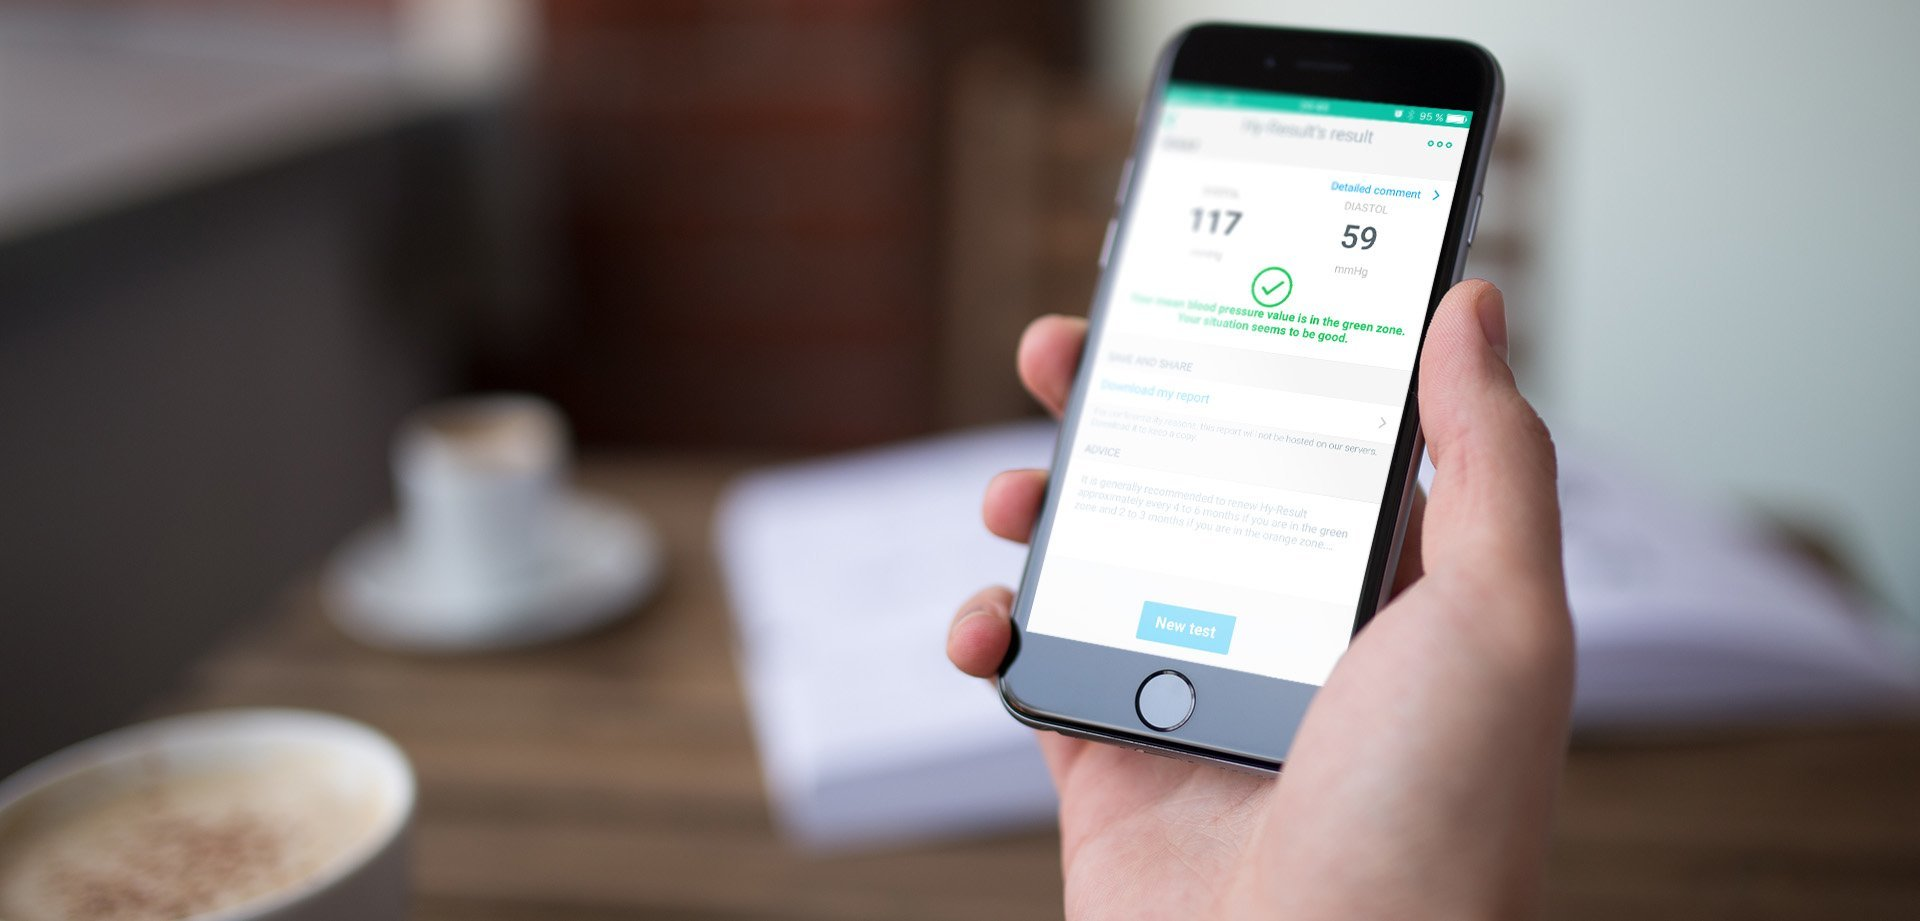 Withings' New Algorithm Helps Patients Accurately Track Blood Pressure at Home